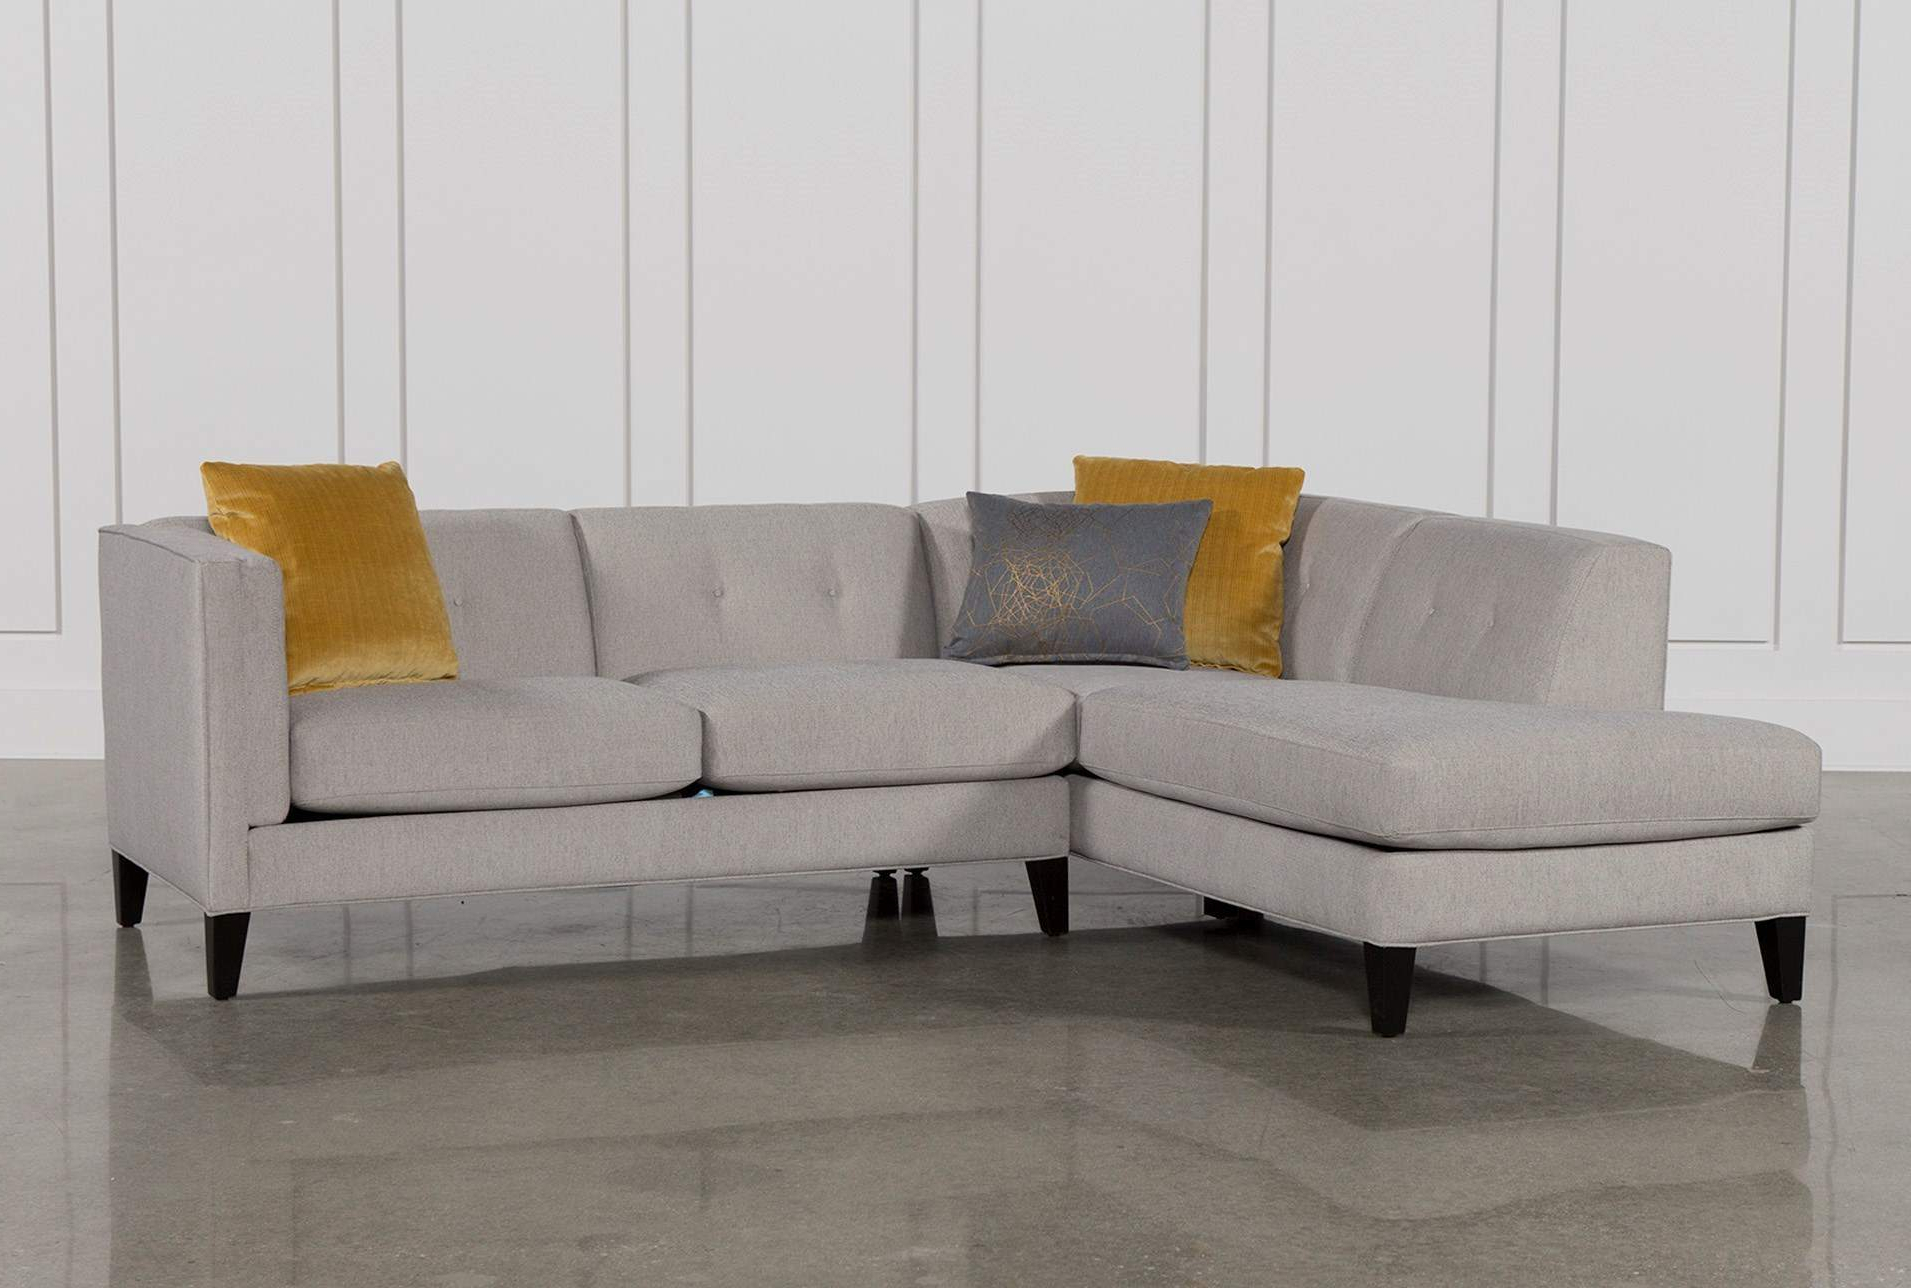 Shapely Small Sectional Sofas Living Spaces Couch Locks Display Throughout Preferred Adeline 3 Piece Sectionals (Gallery 20 of 20)